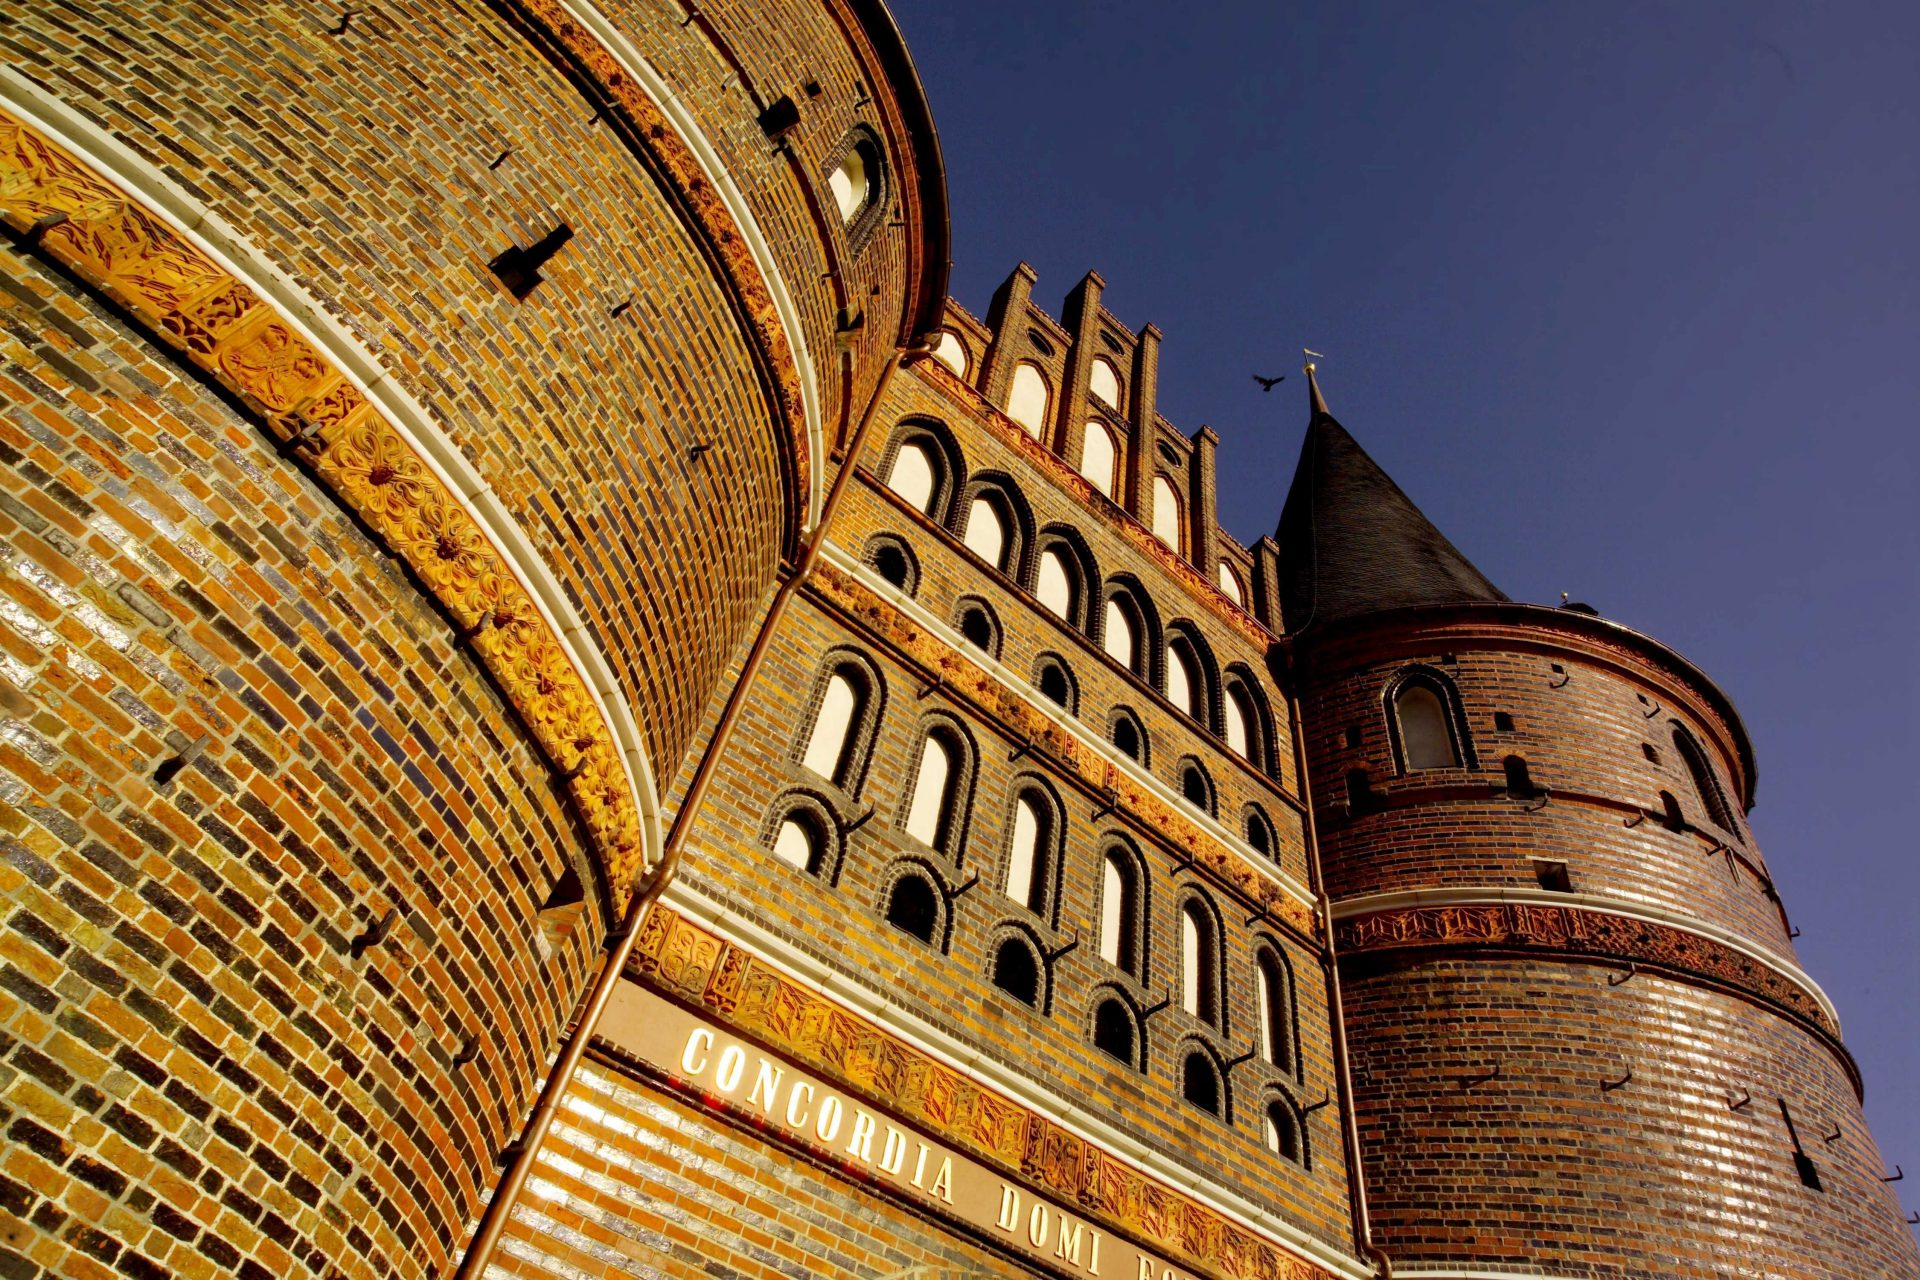 The two majestic red brick towers of the Lübeck Holstentor